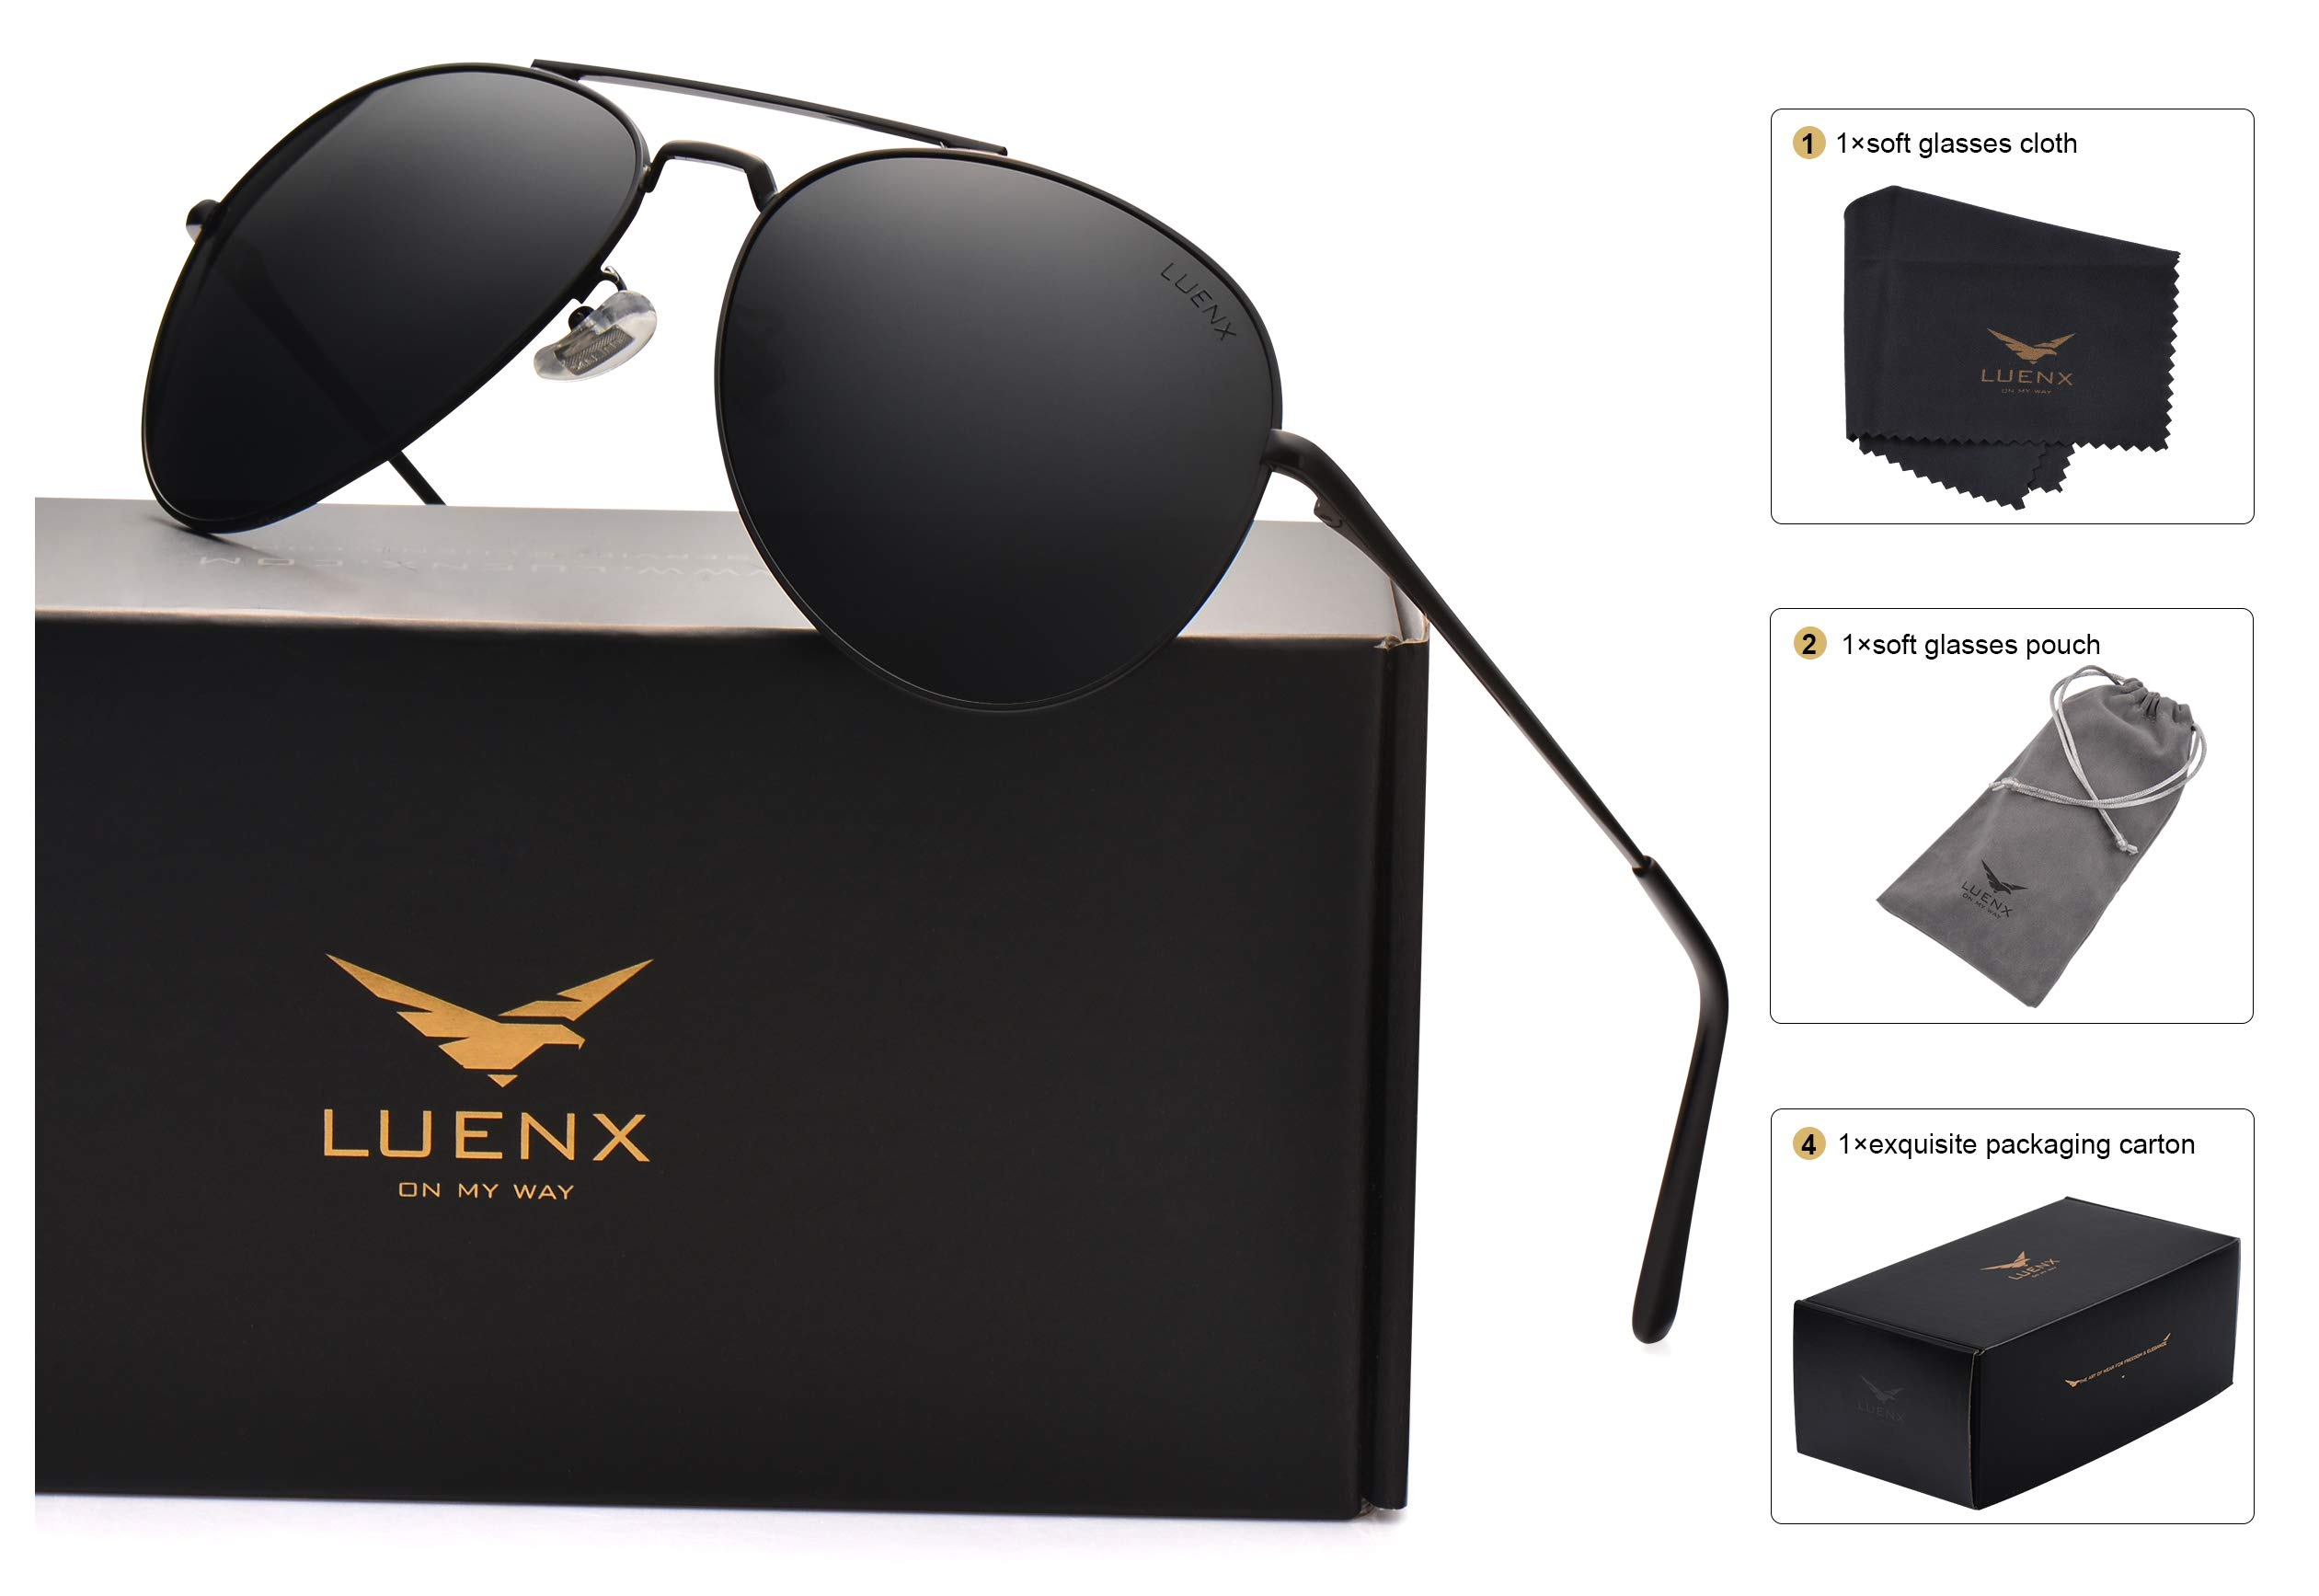 8a15de9c0c Galleon - LUENX Aviator Sunglasses Men Women Polarized With Case - UV 400  Non-Mirror Black Lens Metal Black Frame 60mm